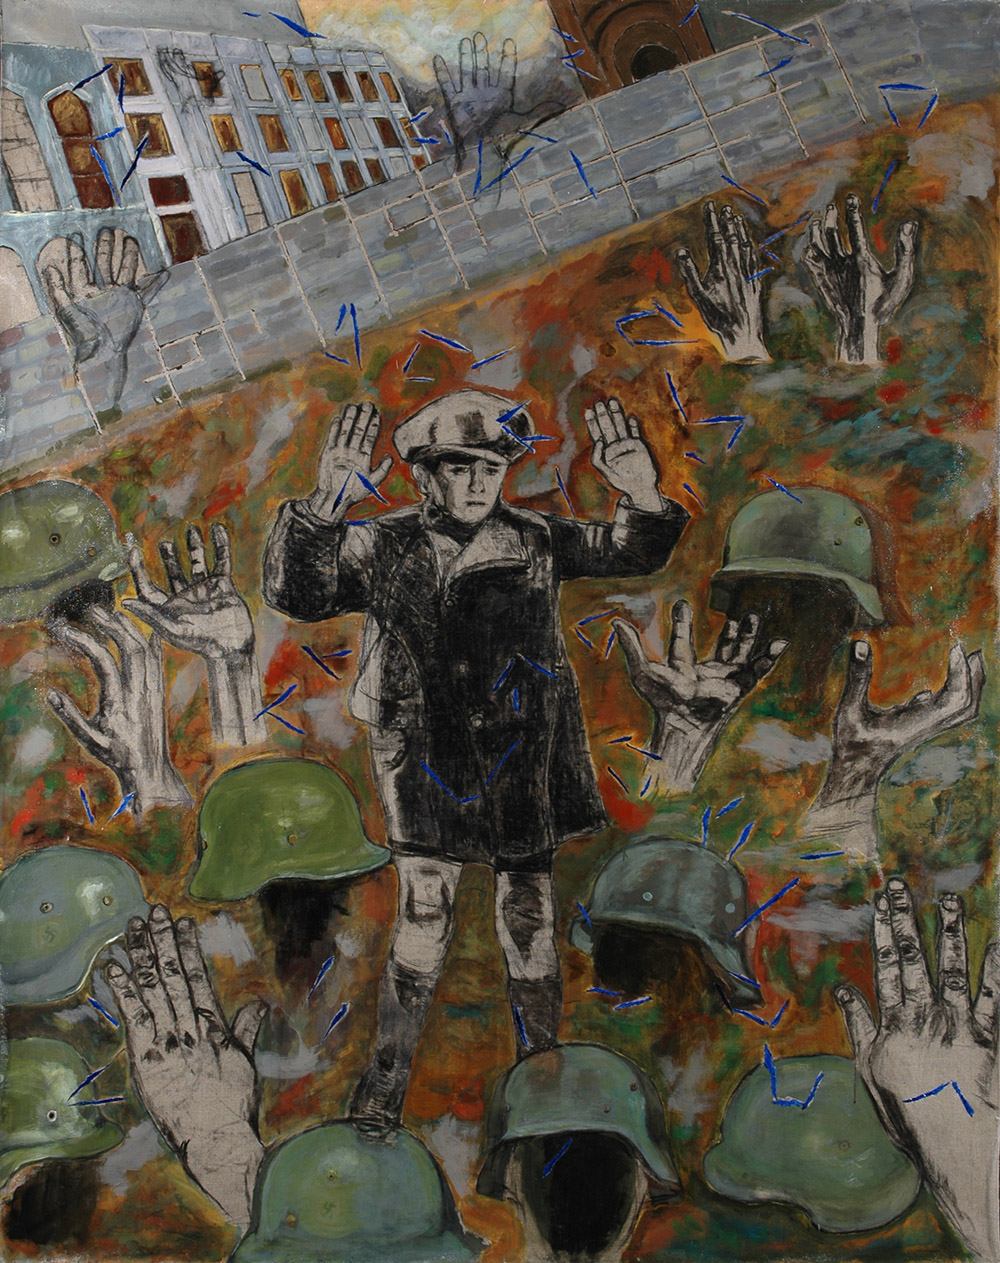 4.-Ono-Warsaw-Ghetto-Uprising-Victoire-d'Une-Defaite-2009.-Charcoal-and-acrylic-on-canvas-2-x-1.49-m-x.jpg